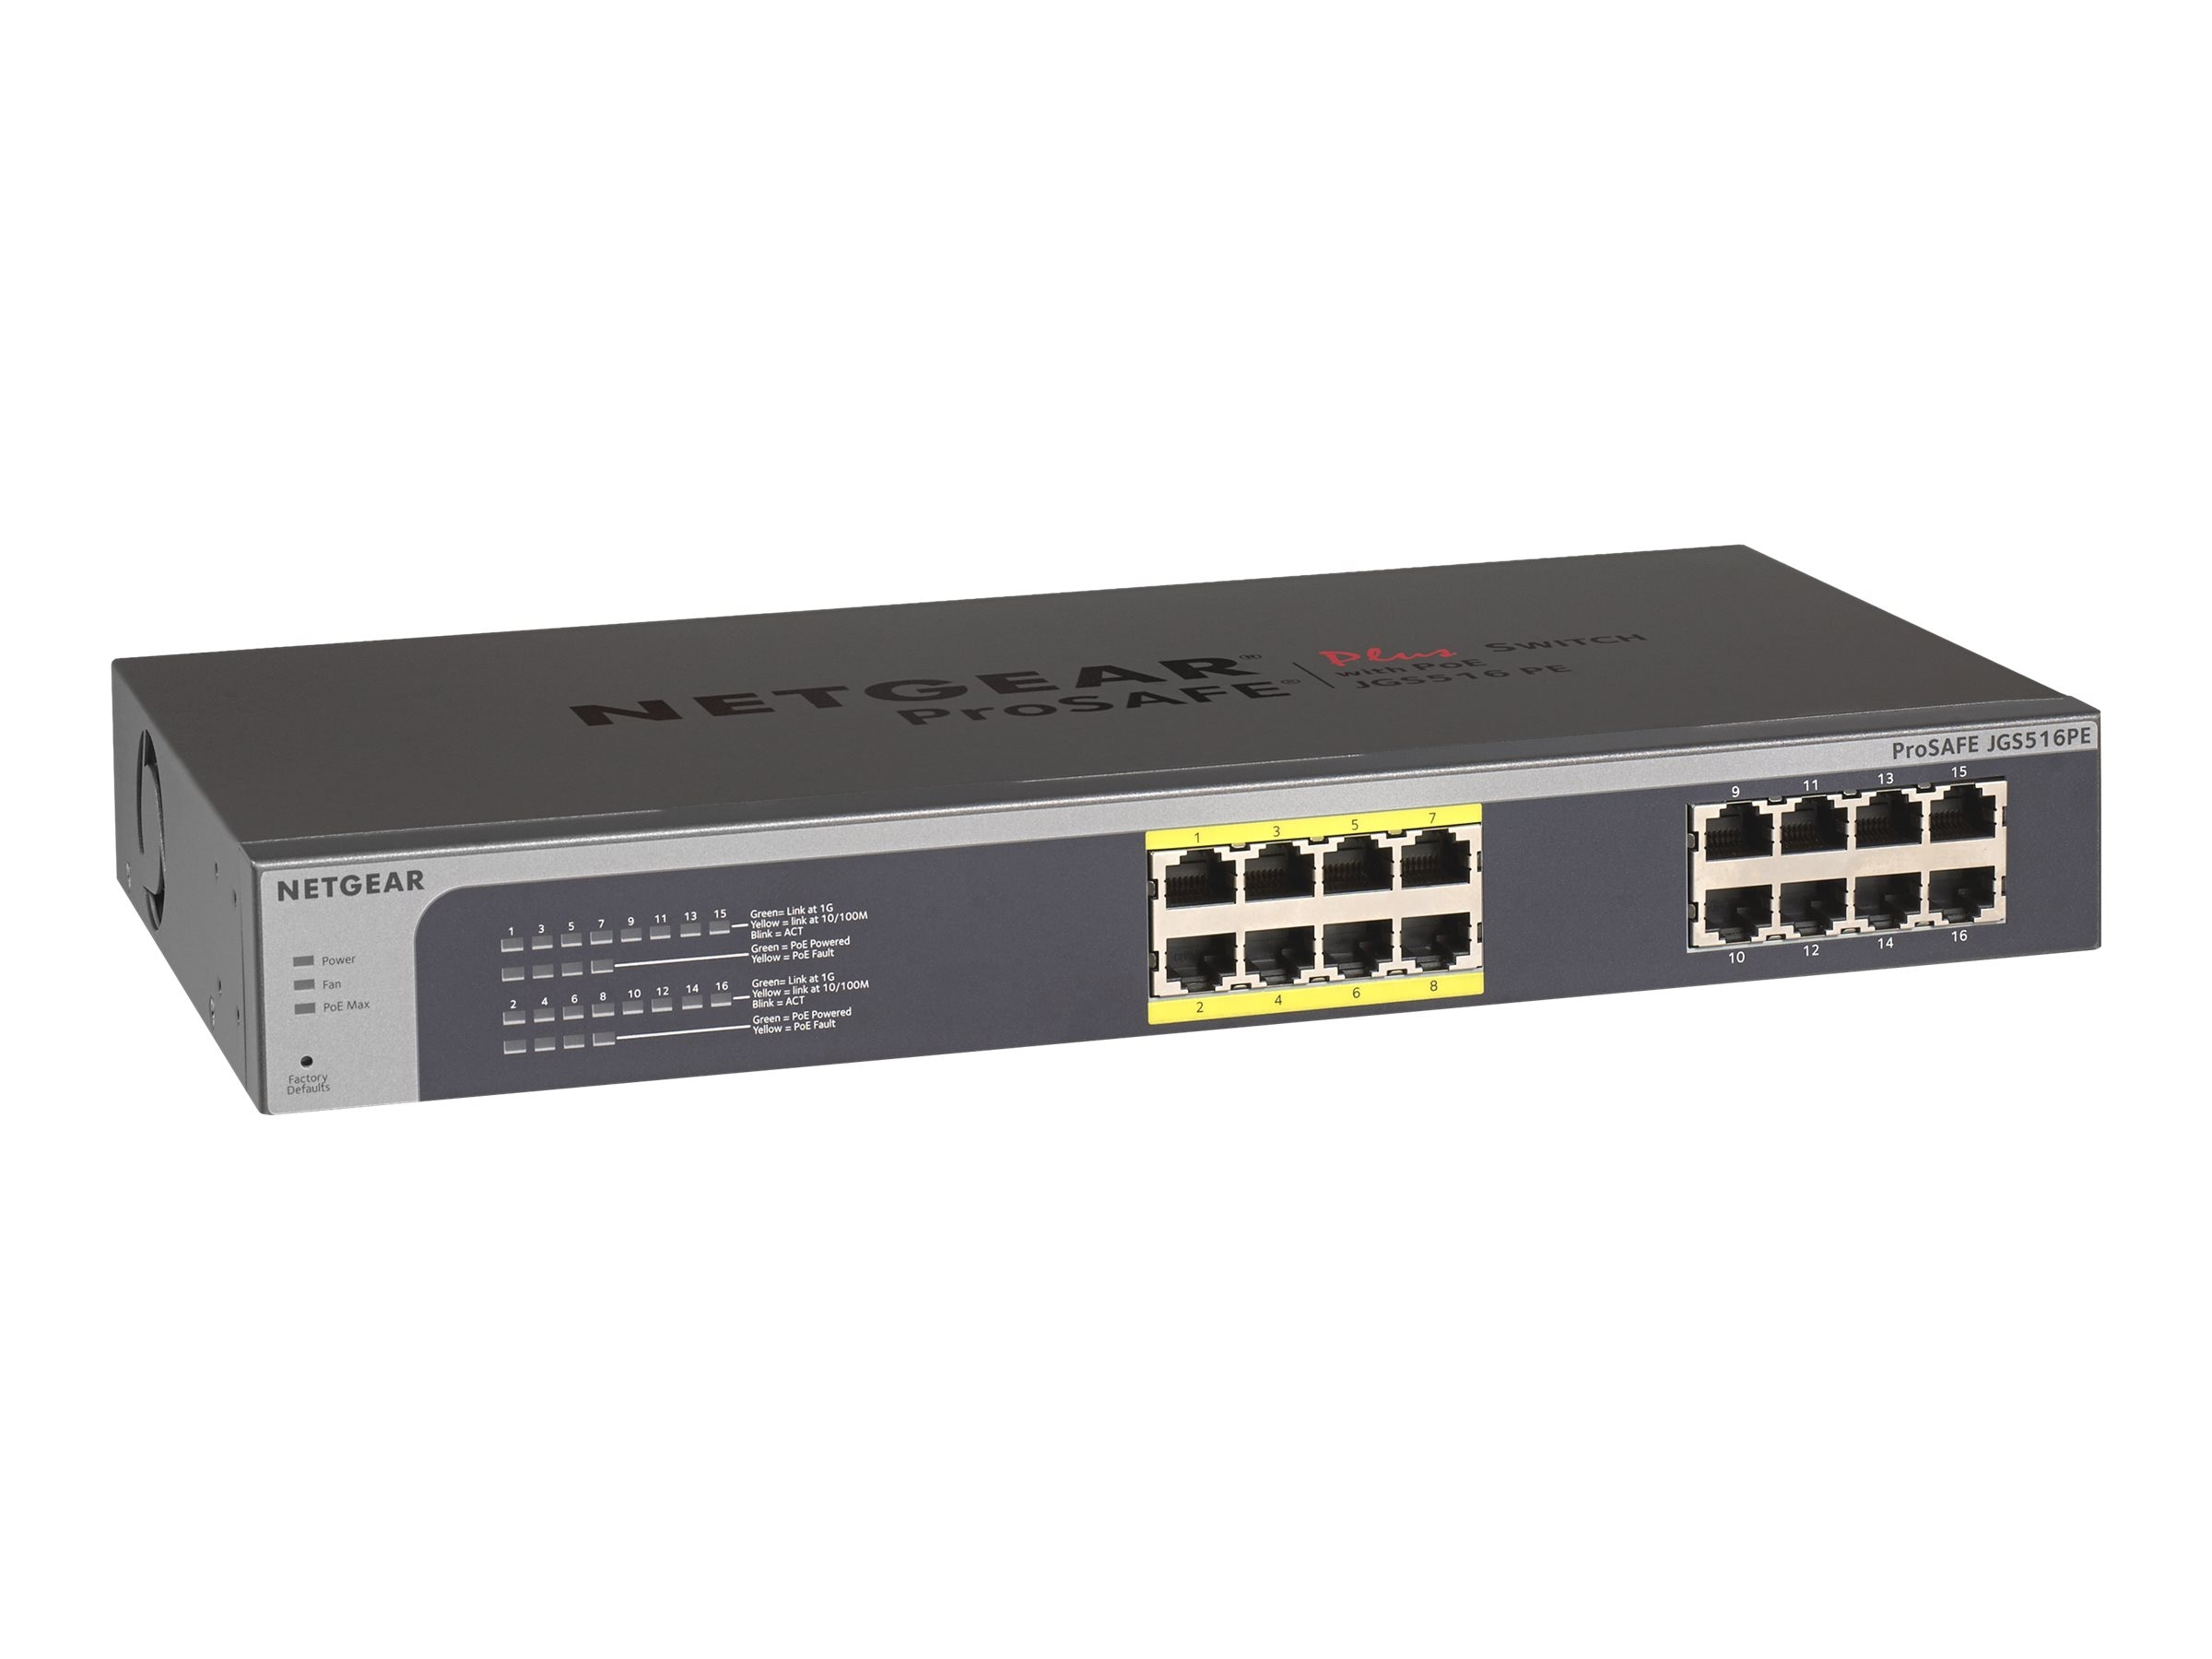 Netgear 16-Port Prosafe Plus Gigabit Switch w PoE, JGS516PE-100NAS